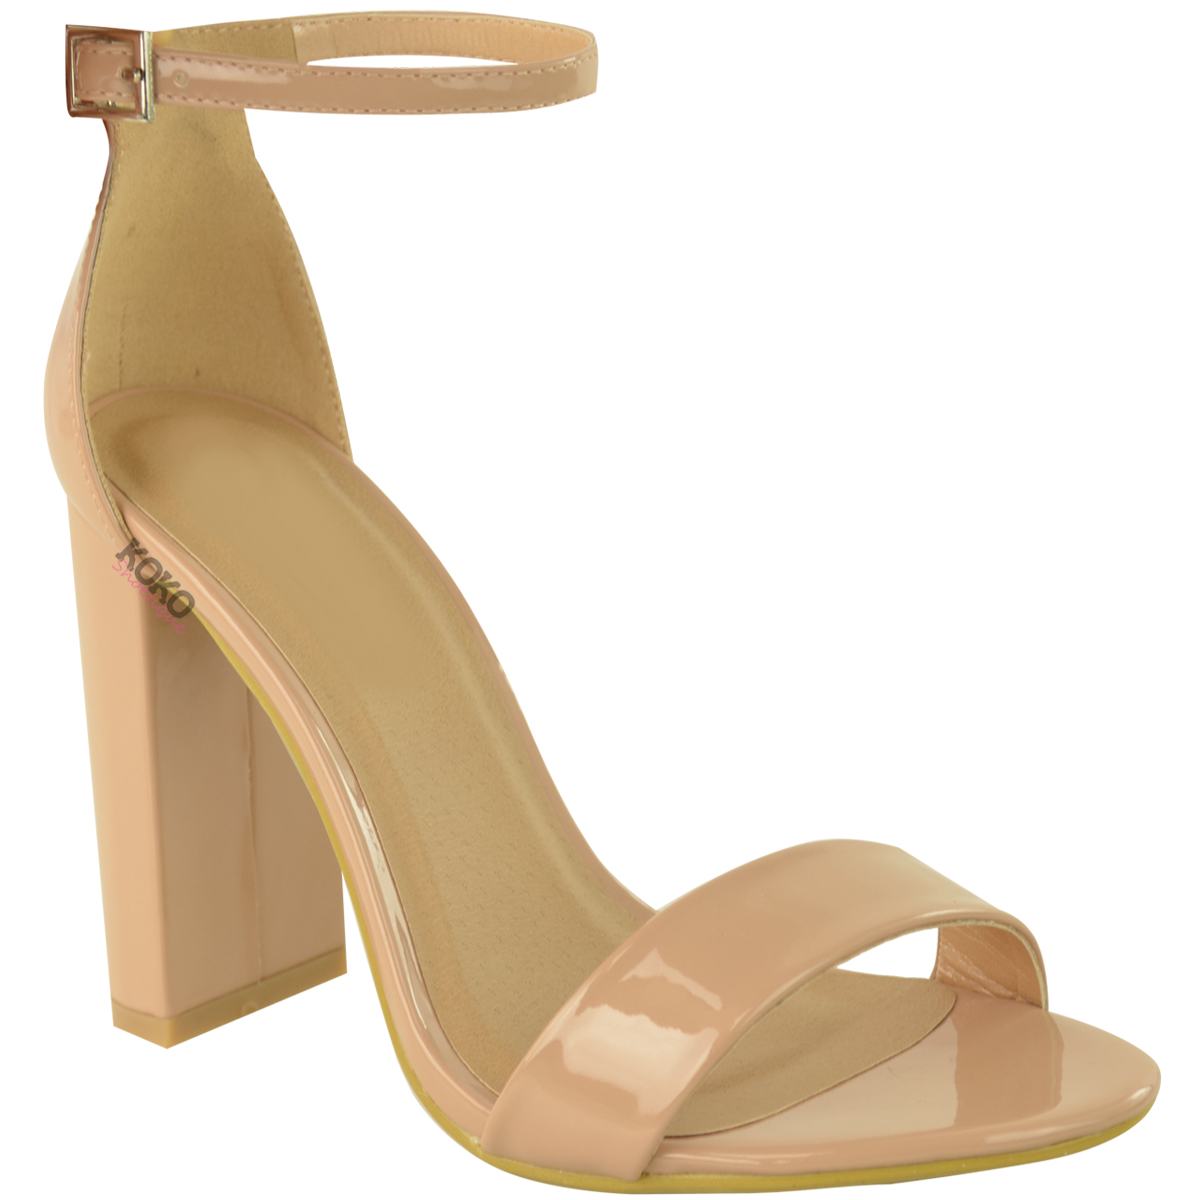 Womens-Ladies-Block-High-Heels-Ankle-Strap-Sexy-Open-Toe-Sandals-Shoes-Size-New miniatuur 48